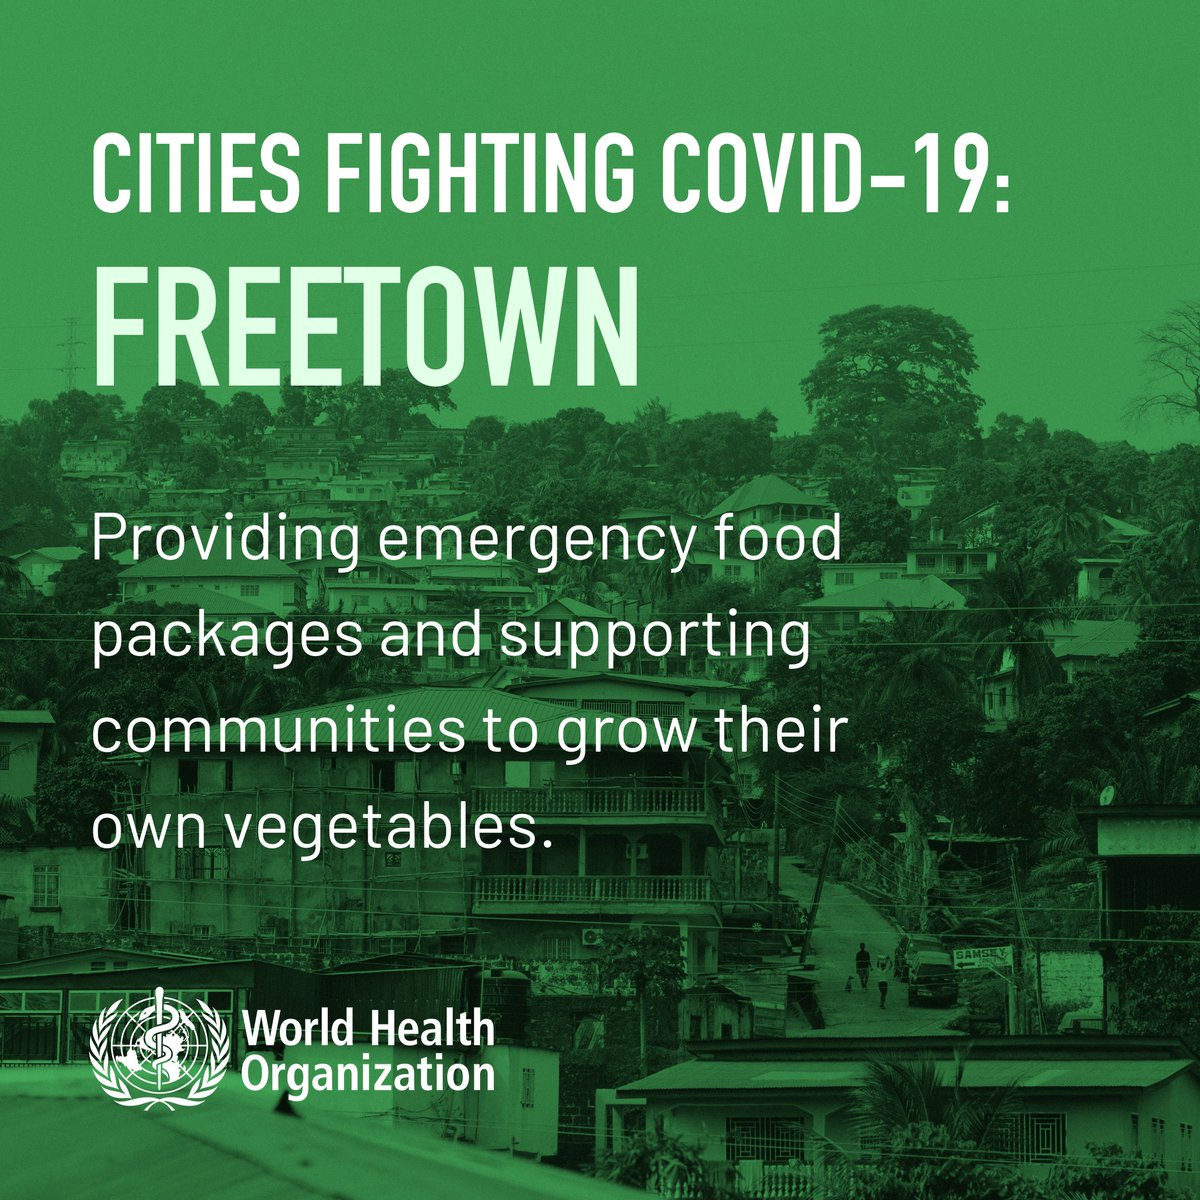 City leadership in Freetown, Sierra Leone 🇸🇱 , provides emergency food packages and supports communities to grow their own vegetables.   👉 https://t.co/fwNAForBxC  #cities4health https://t.co/TSfrjy1z60